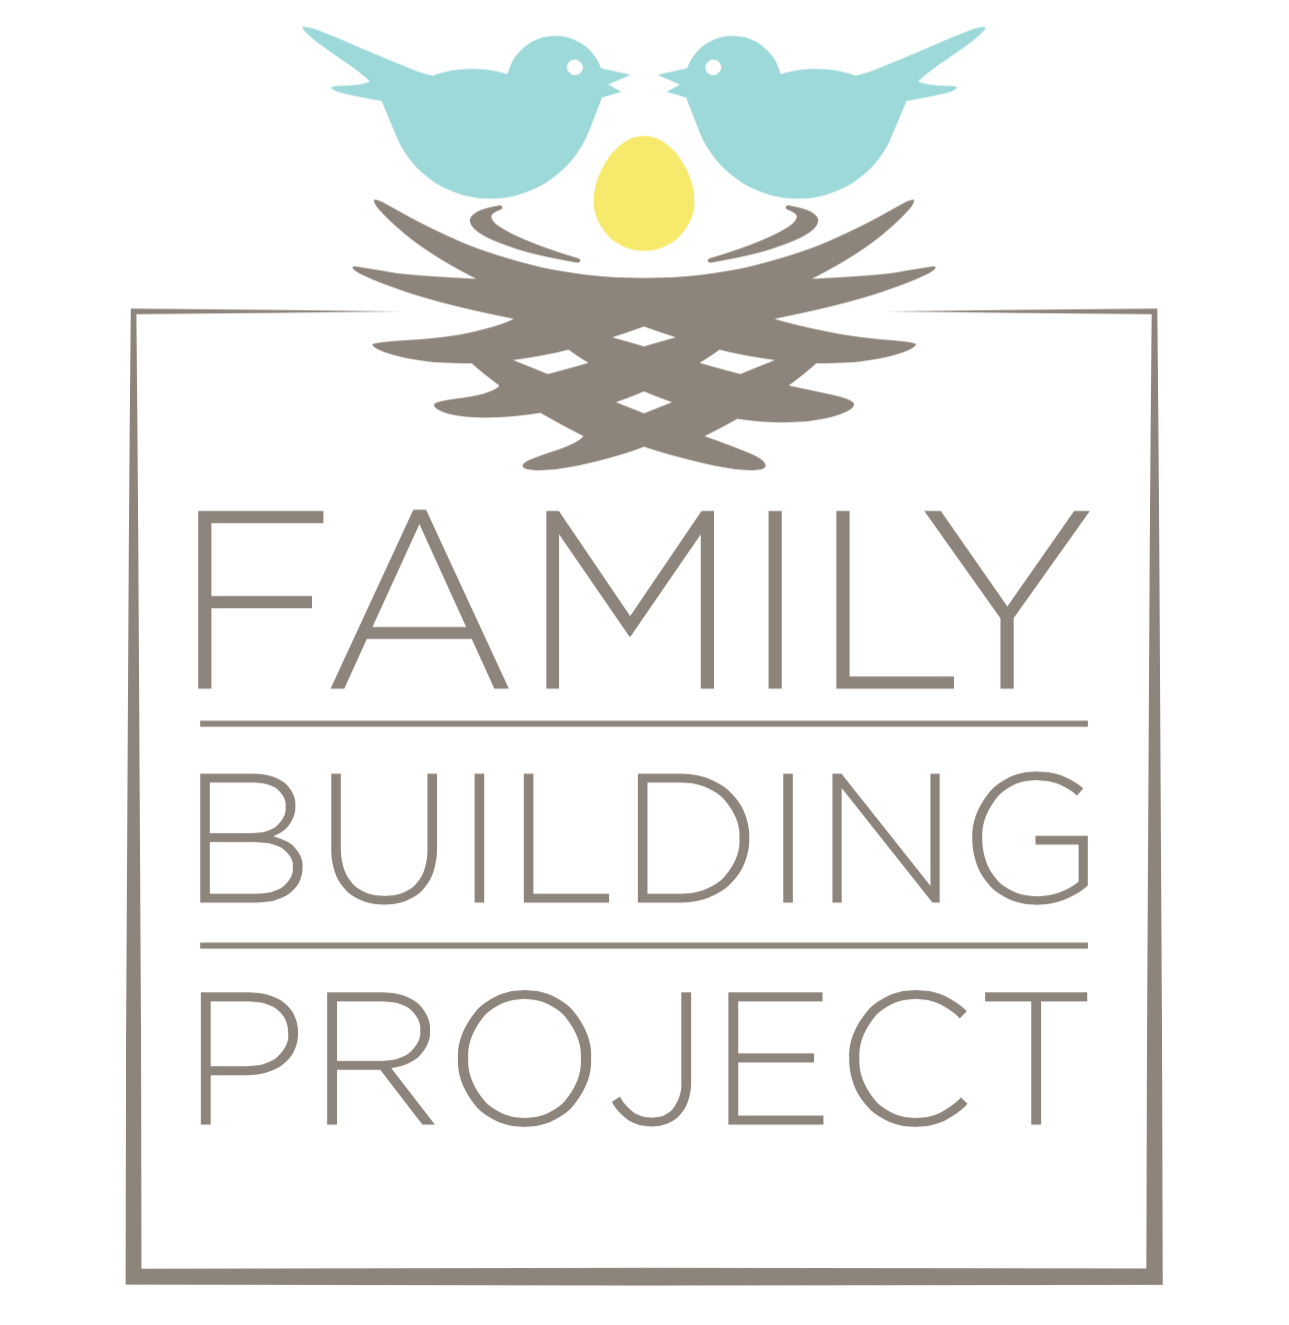 Family Building Project